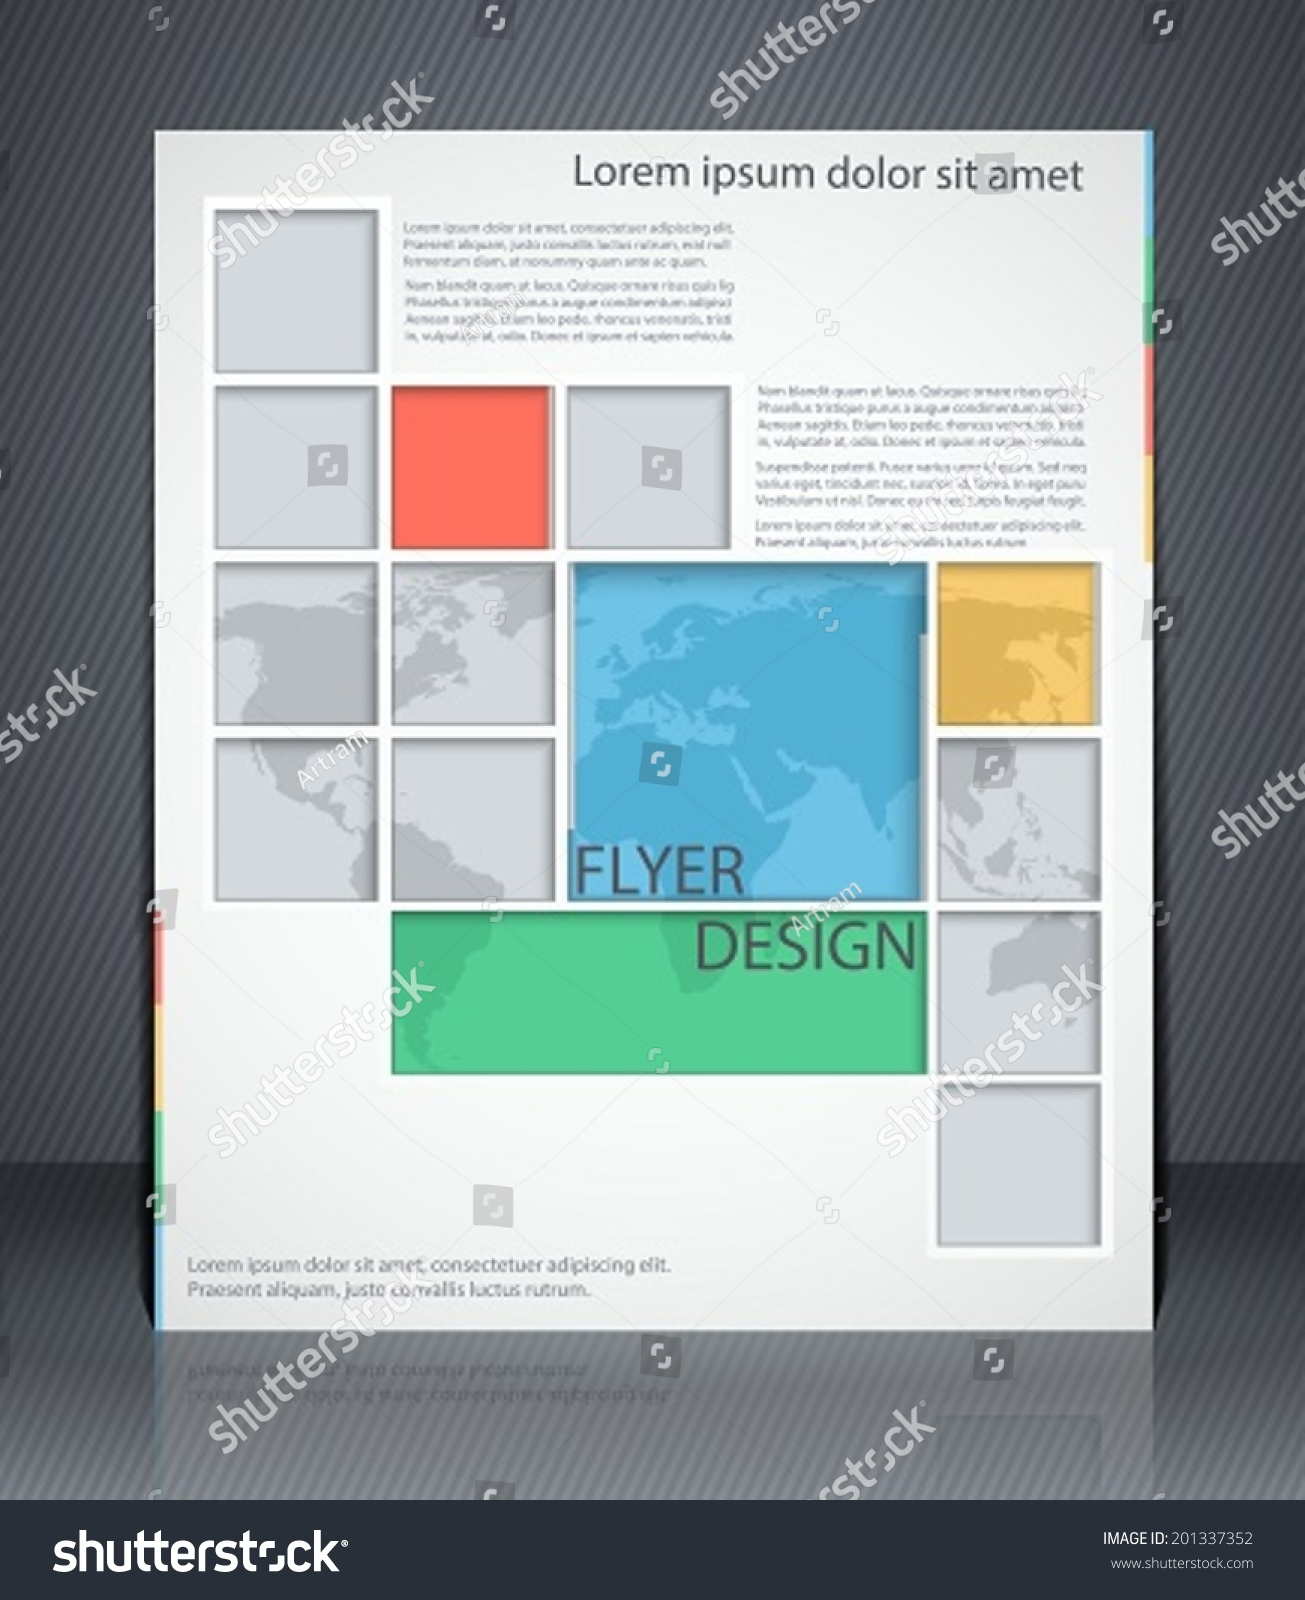 vector layout business flyer map magazine stock vector  vector layout business flyer map magazine cover or corporate geometric design template advertisement